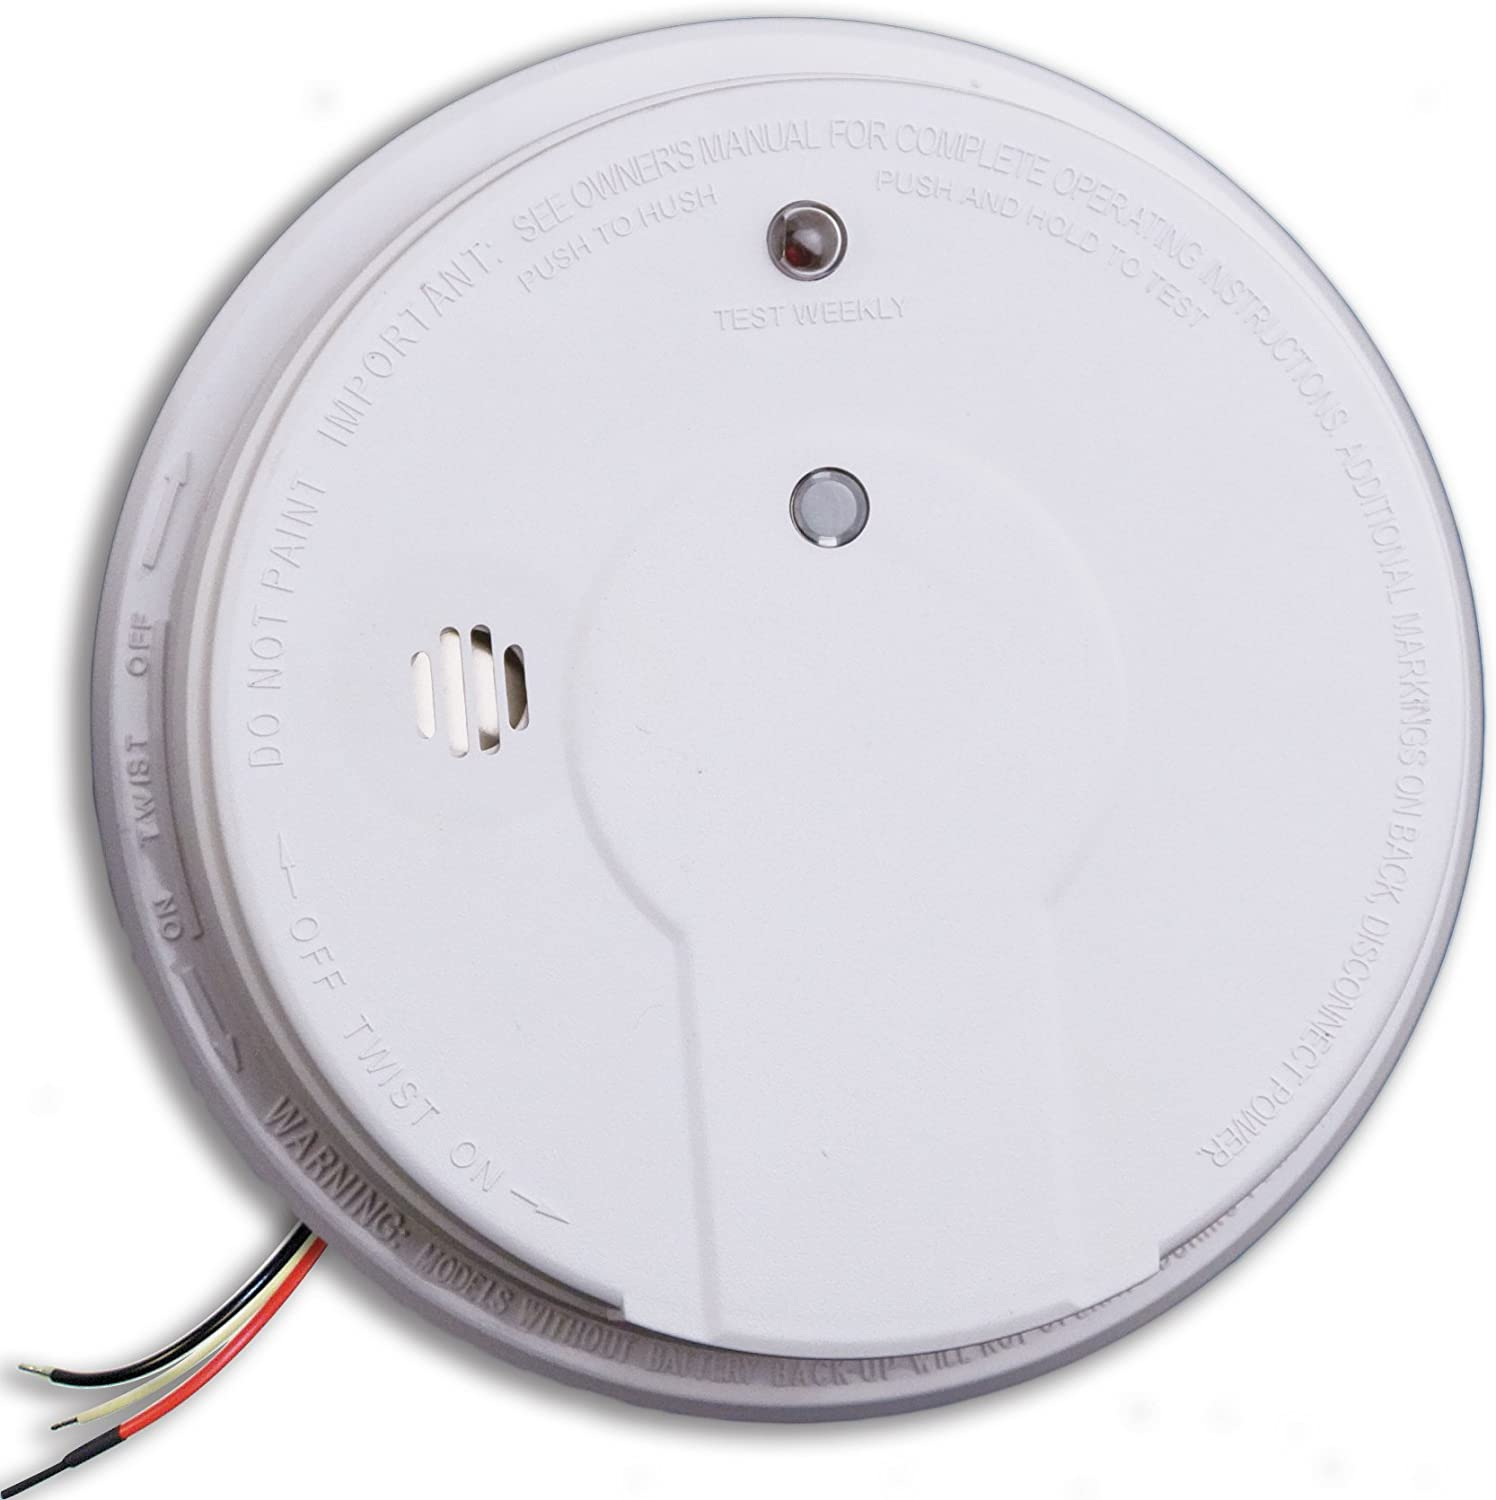 Kidde i12020 Hardwired Smoke Alarm with Hush Button, Interconnectable